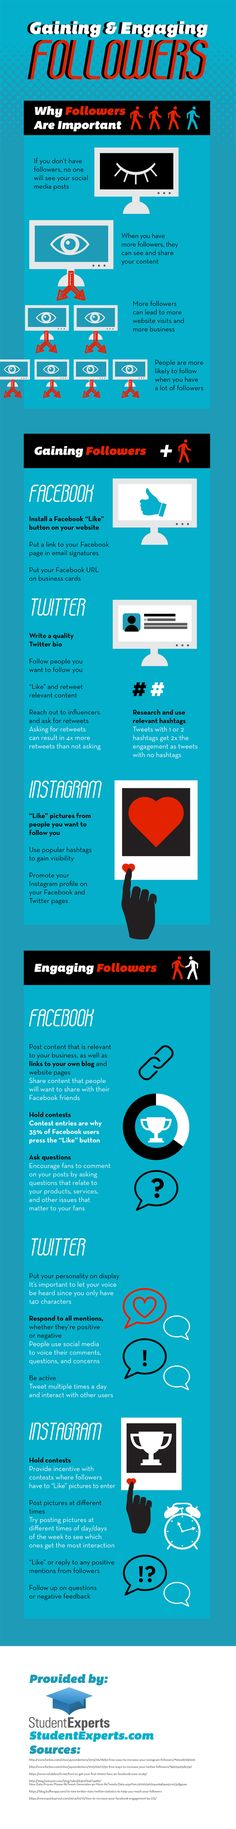 24 Tips to Gain & Engage Followers on Facebook, Twitter & Instagram #Infographic